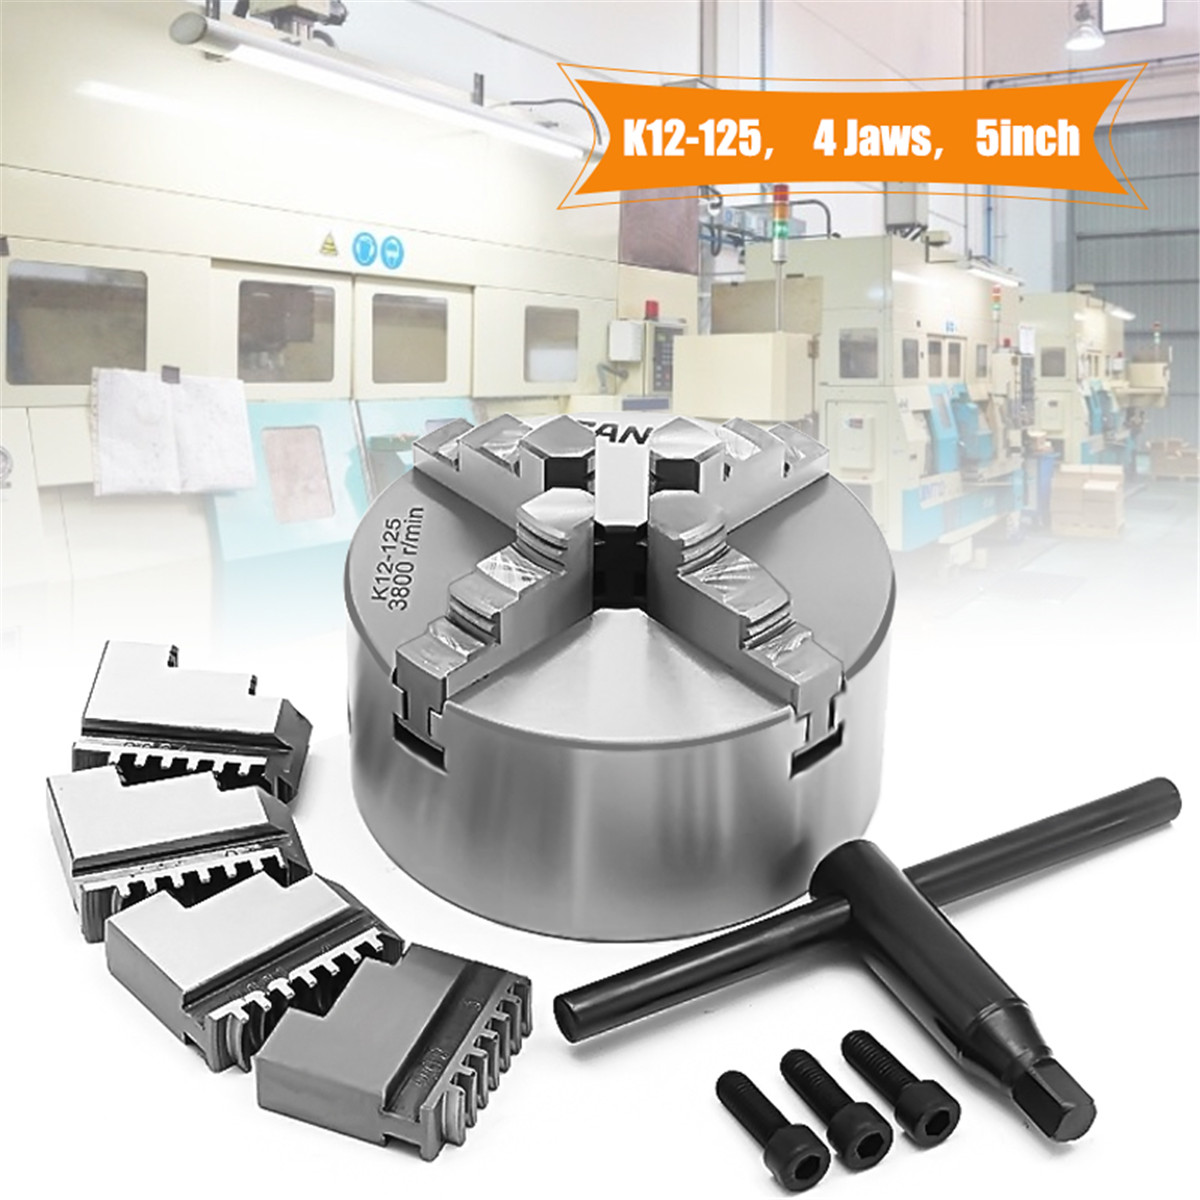 4 Jaw 5'' K12-125 Lathe Chuck Self Centering Hardened Steel CNC Milling 125mm for Drilling Milling Machine 80mm 4jaw independent lathe chuck k12 80 3 self centering chuck for cnc lathe drilling milling machine